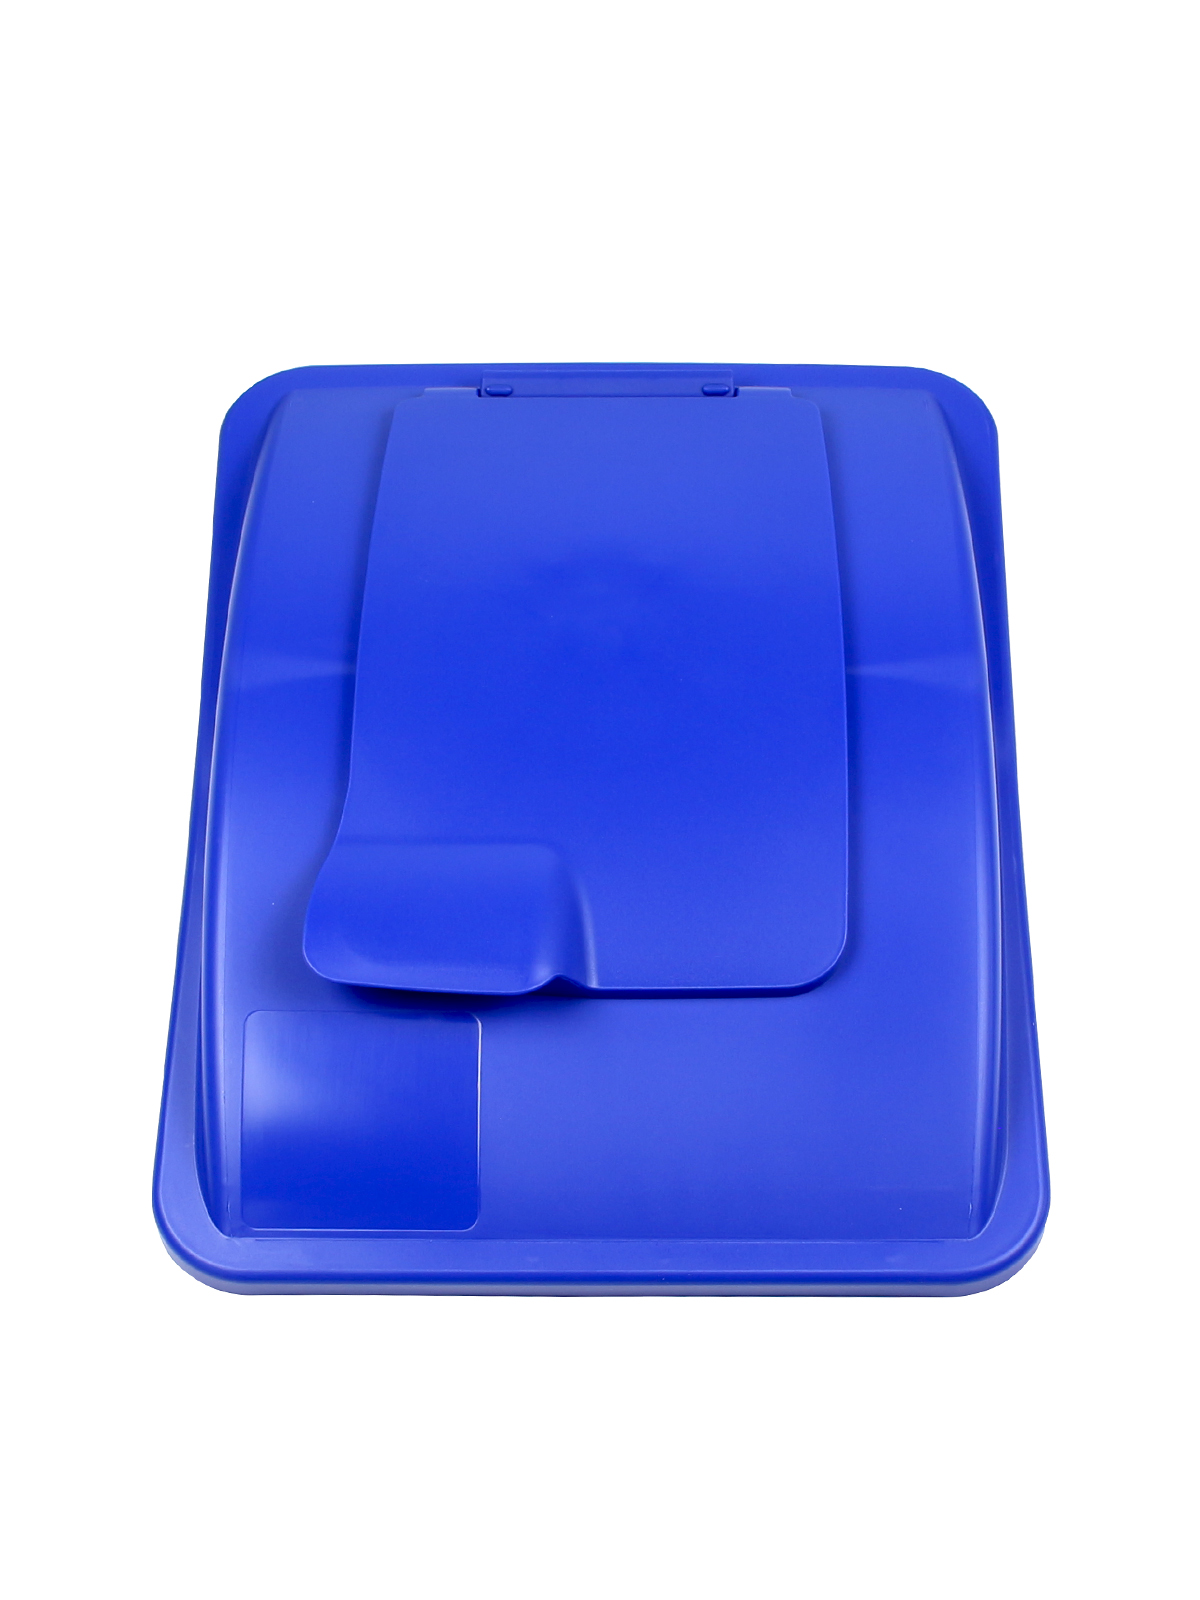 WASTE WATCHER® XL - LIFT LID - SOLID OPENING - ROYAL BLUE title=